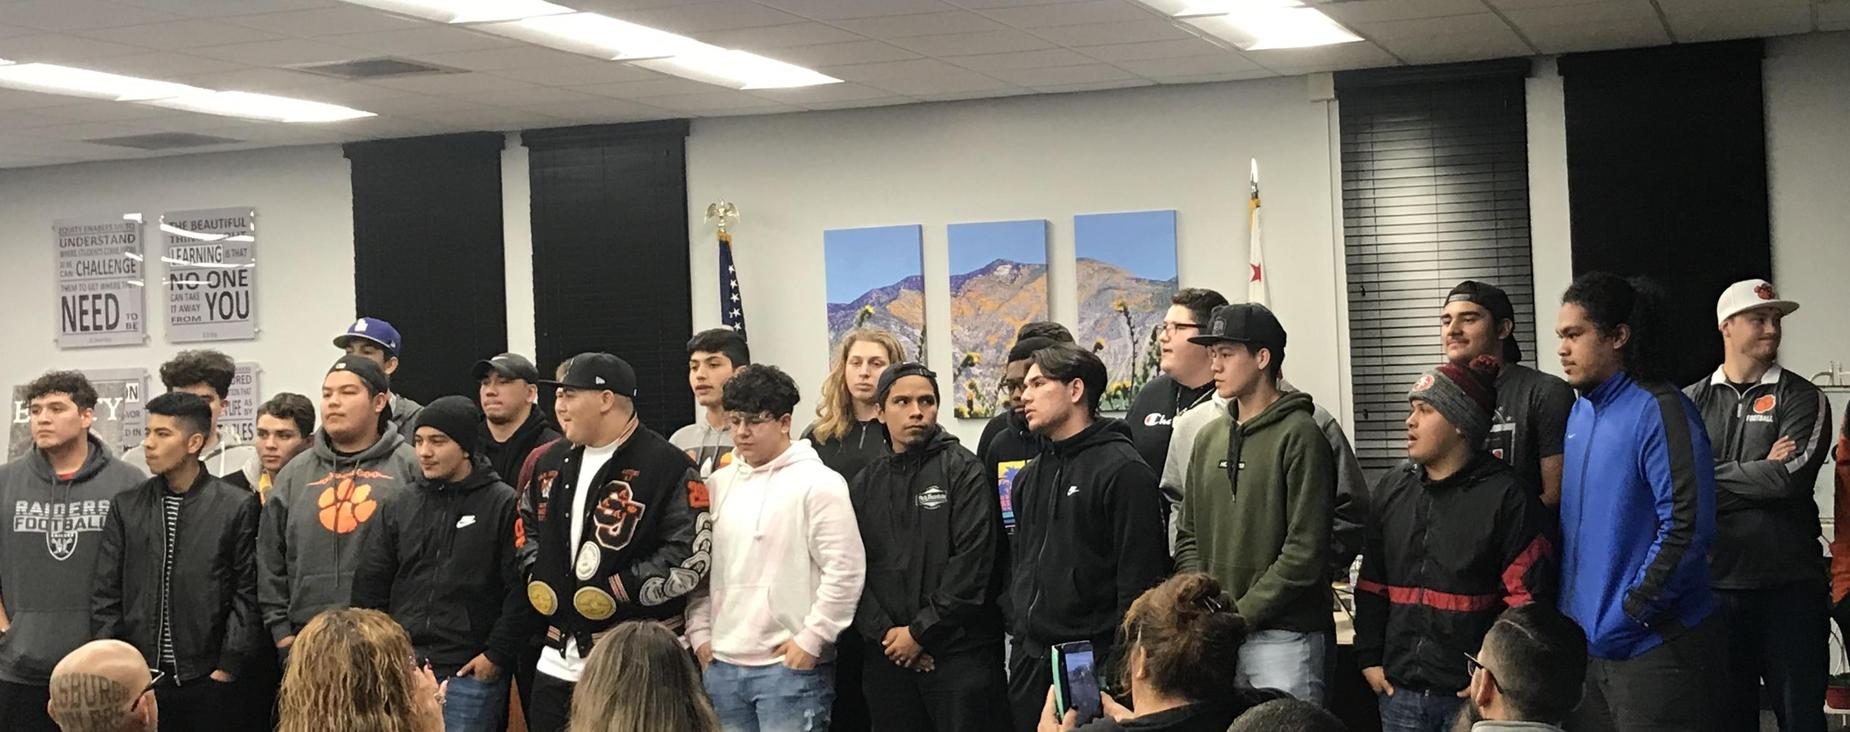 SJHS Varsity Football was recognized for their CIF League Championship.  Go, Tigers!